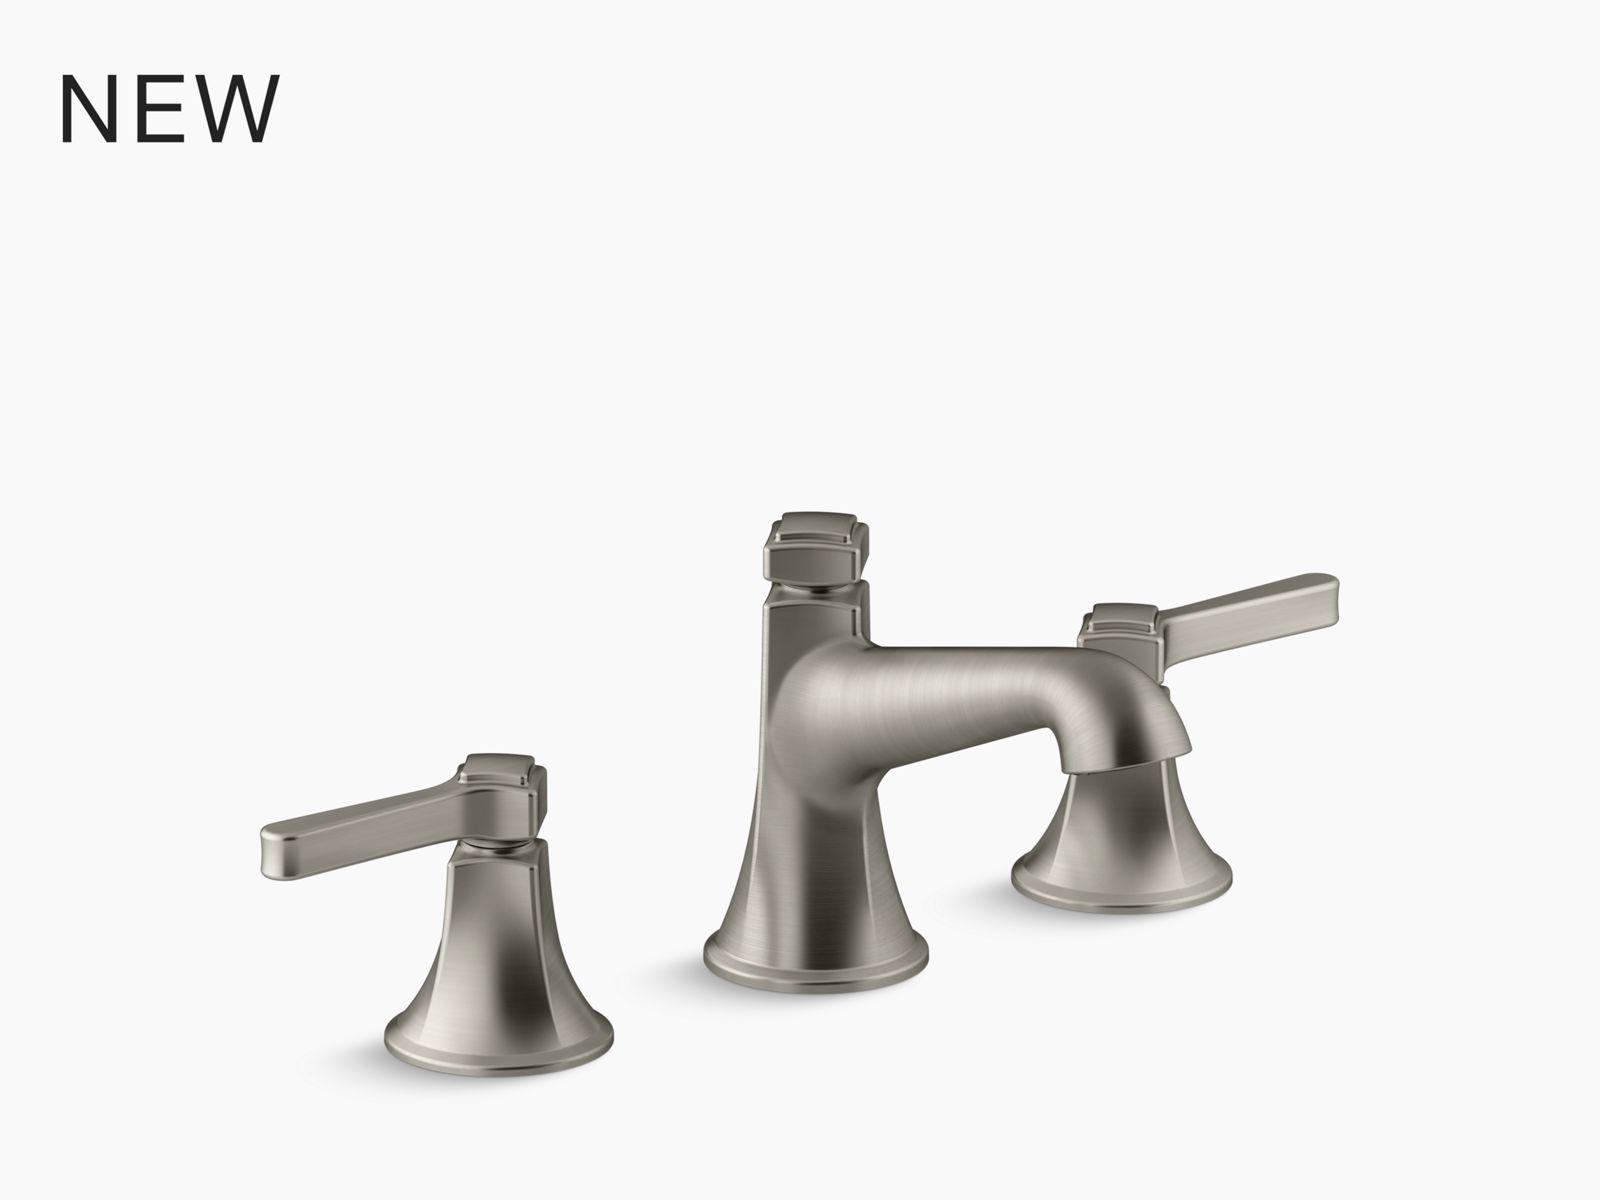 fairfax centerset bathroom sink faucet with single lever handle